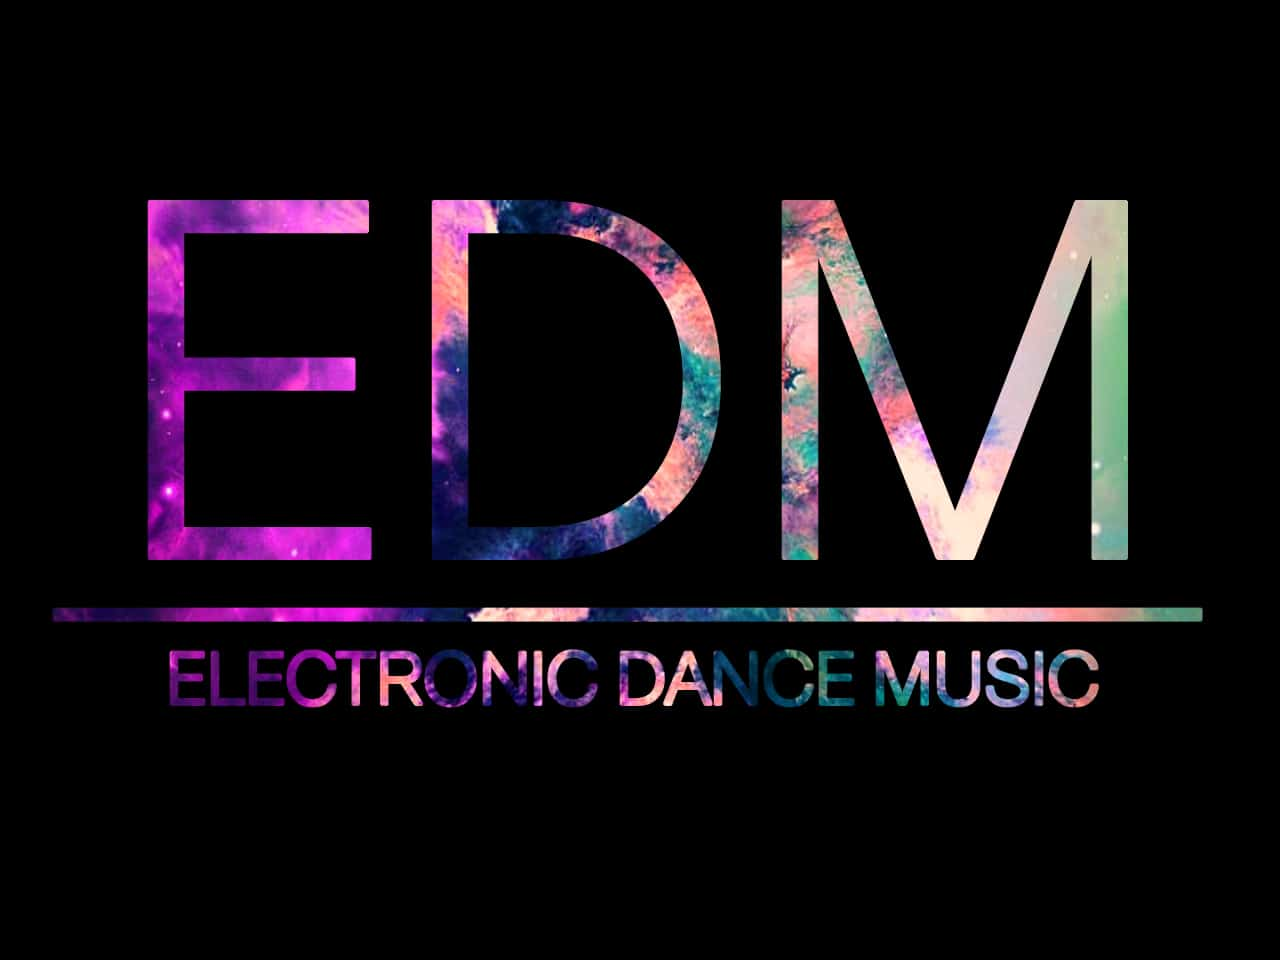 a better look at the electronic music scene in search for a post modern style of music The 20 most influential music artists all over the net if you look and search i keep finding good music band-eq-review-classic-style-modern.